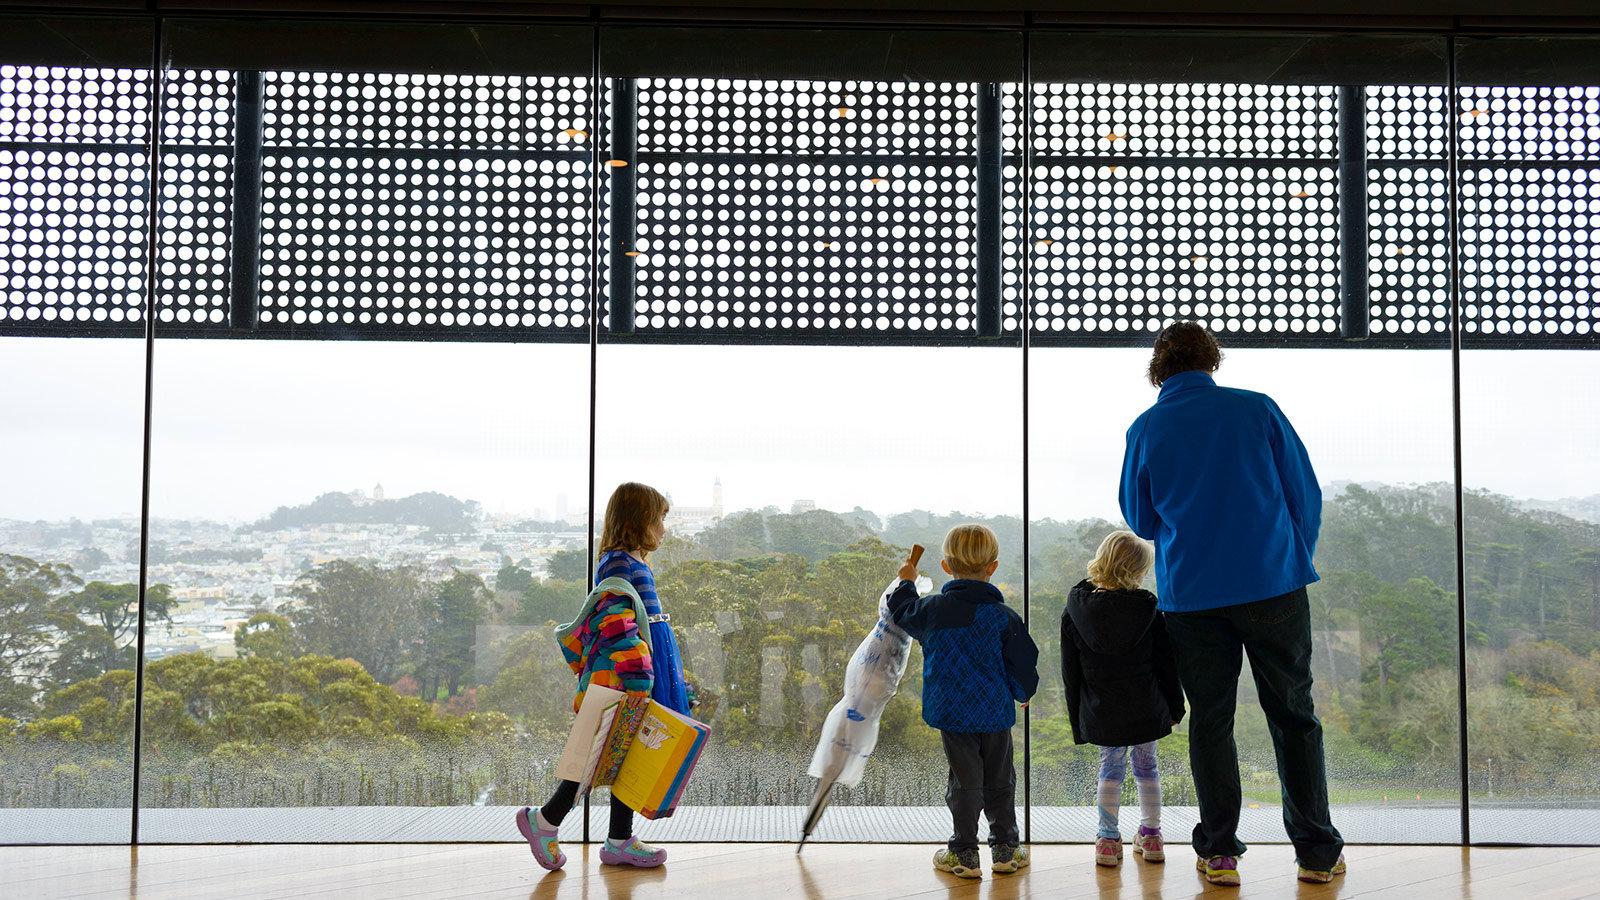 de Young Museum - Tower Observation Level